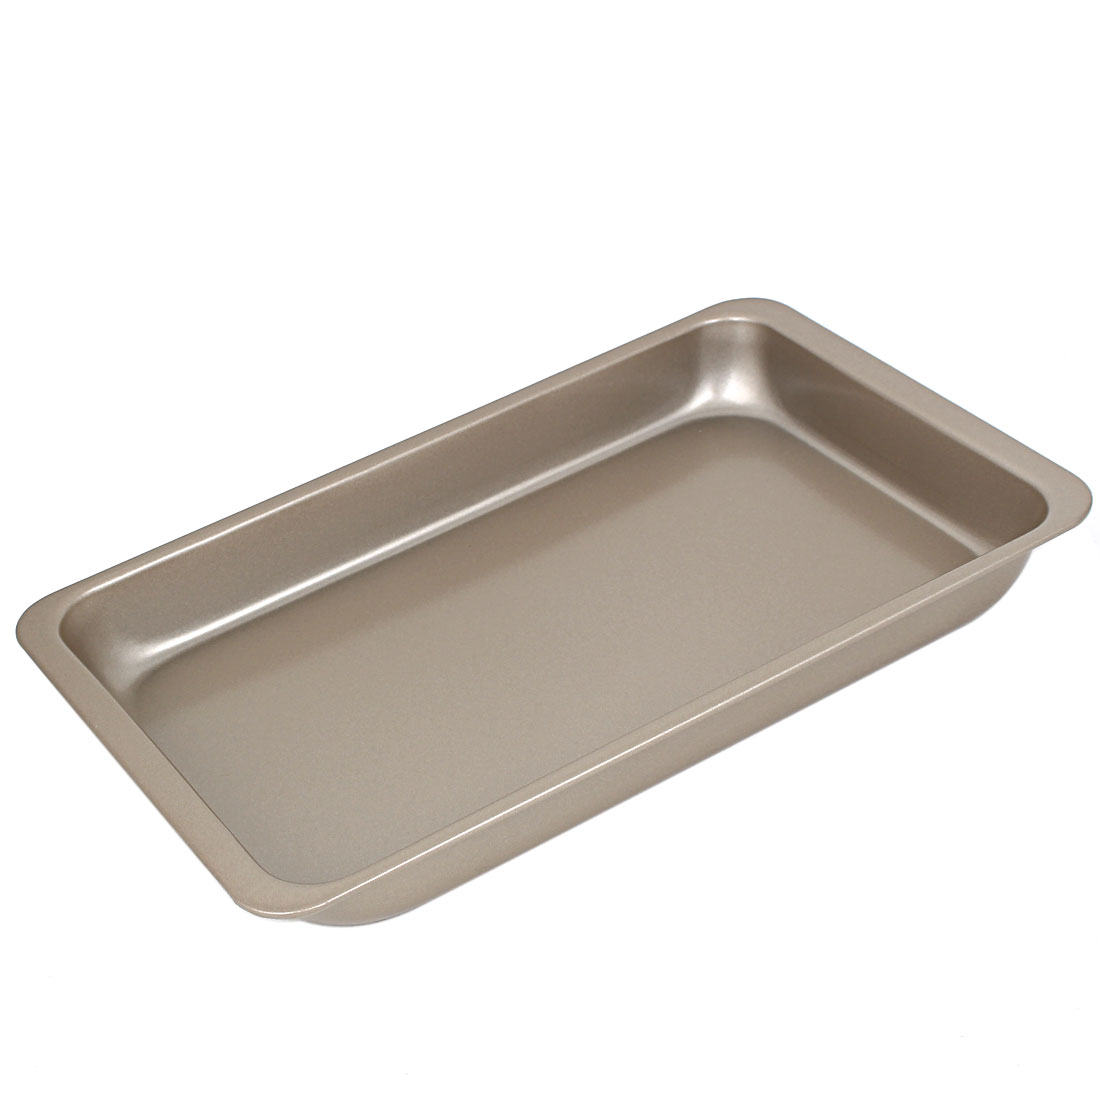 Click here to buy Bread Carbon Steel Rectangle Design Baking Mold Mould Tray Bakeware Pan Black by Unique-Bargains.